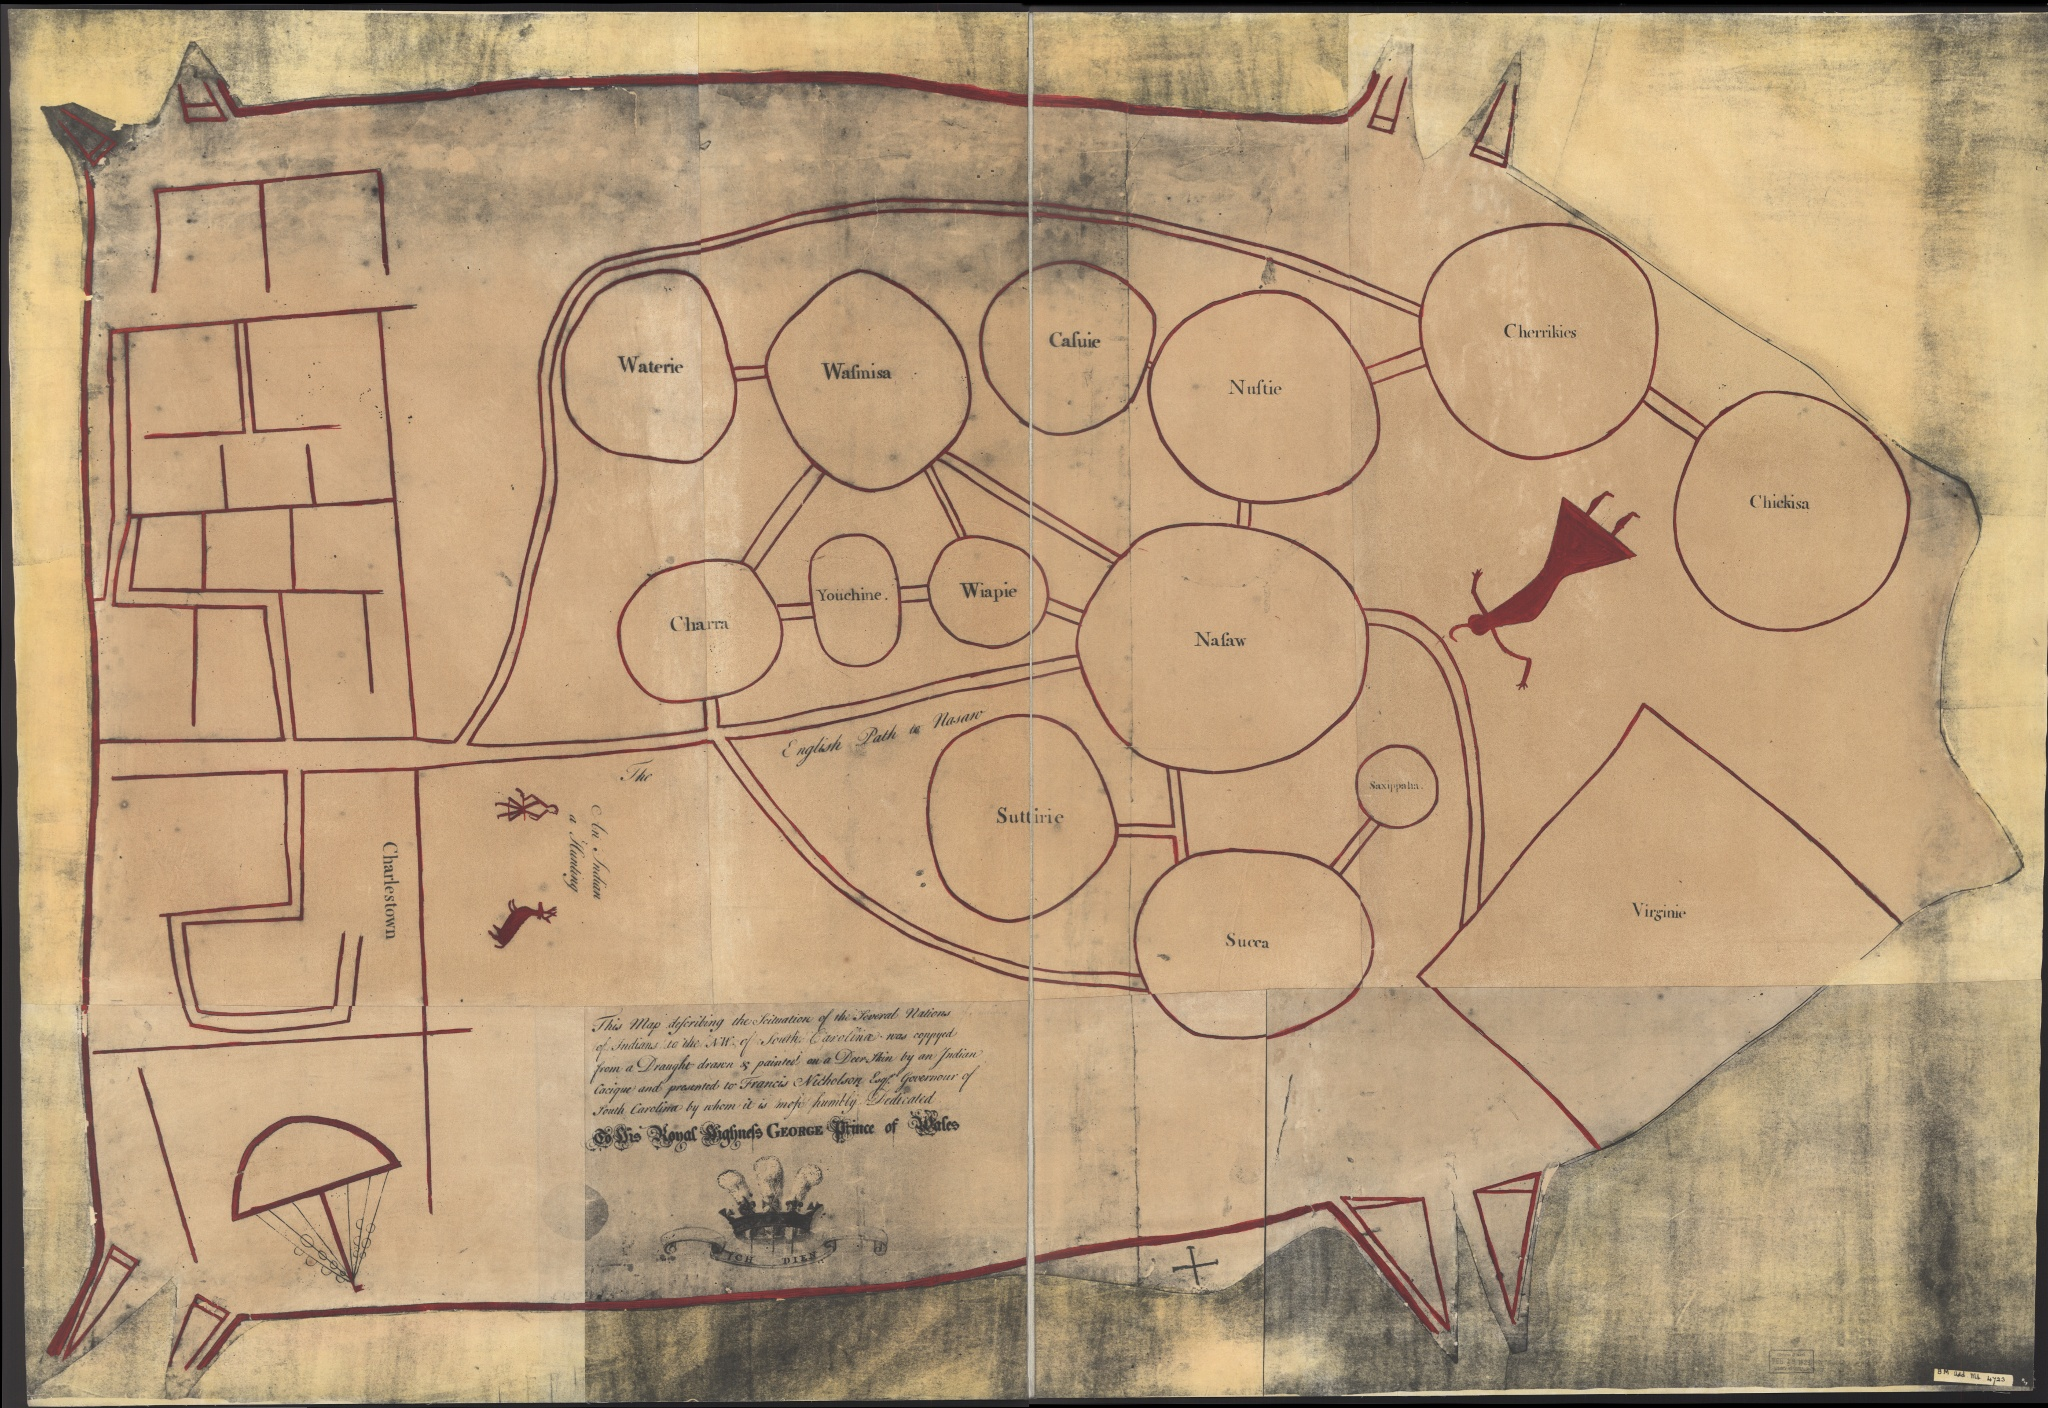 Catawba deerskin map given to South Carolina colonial Governor Francis Nicholson in 1721